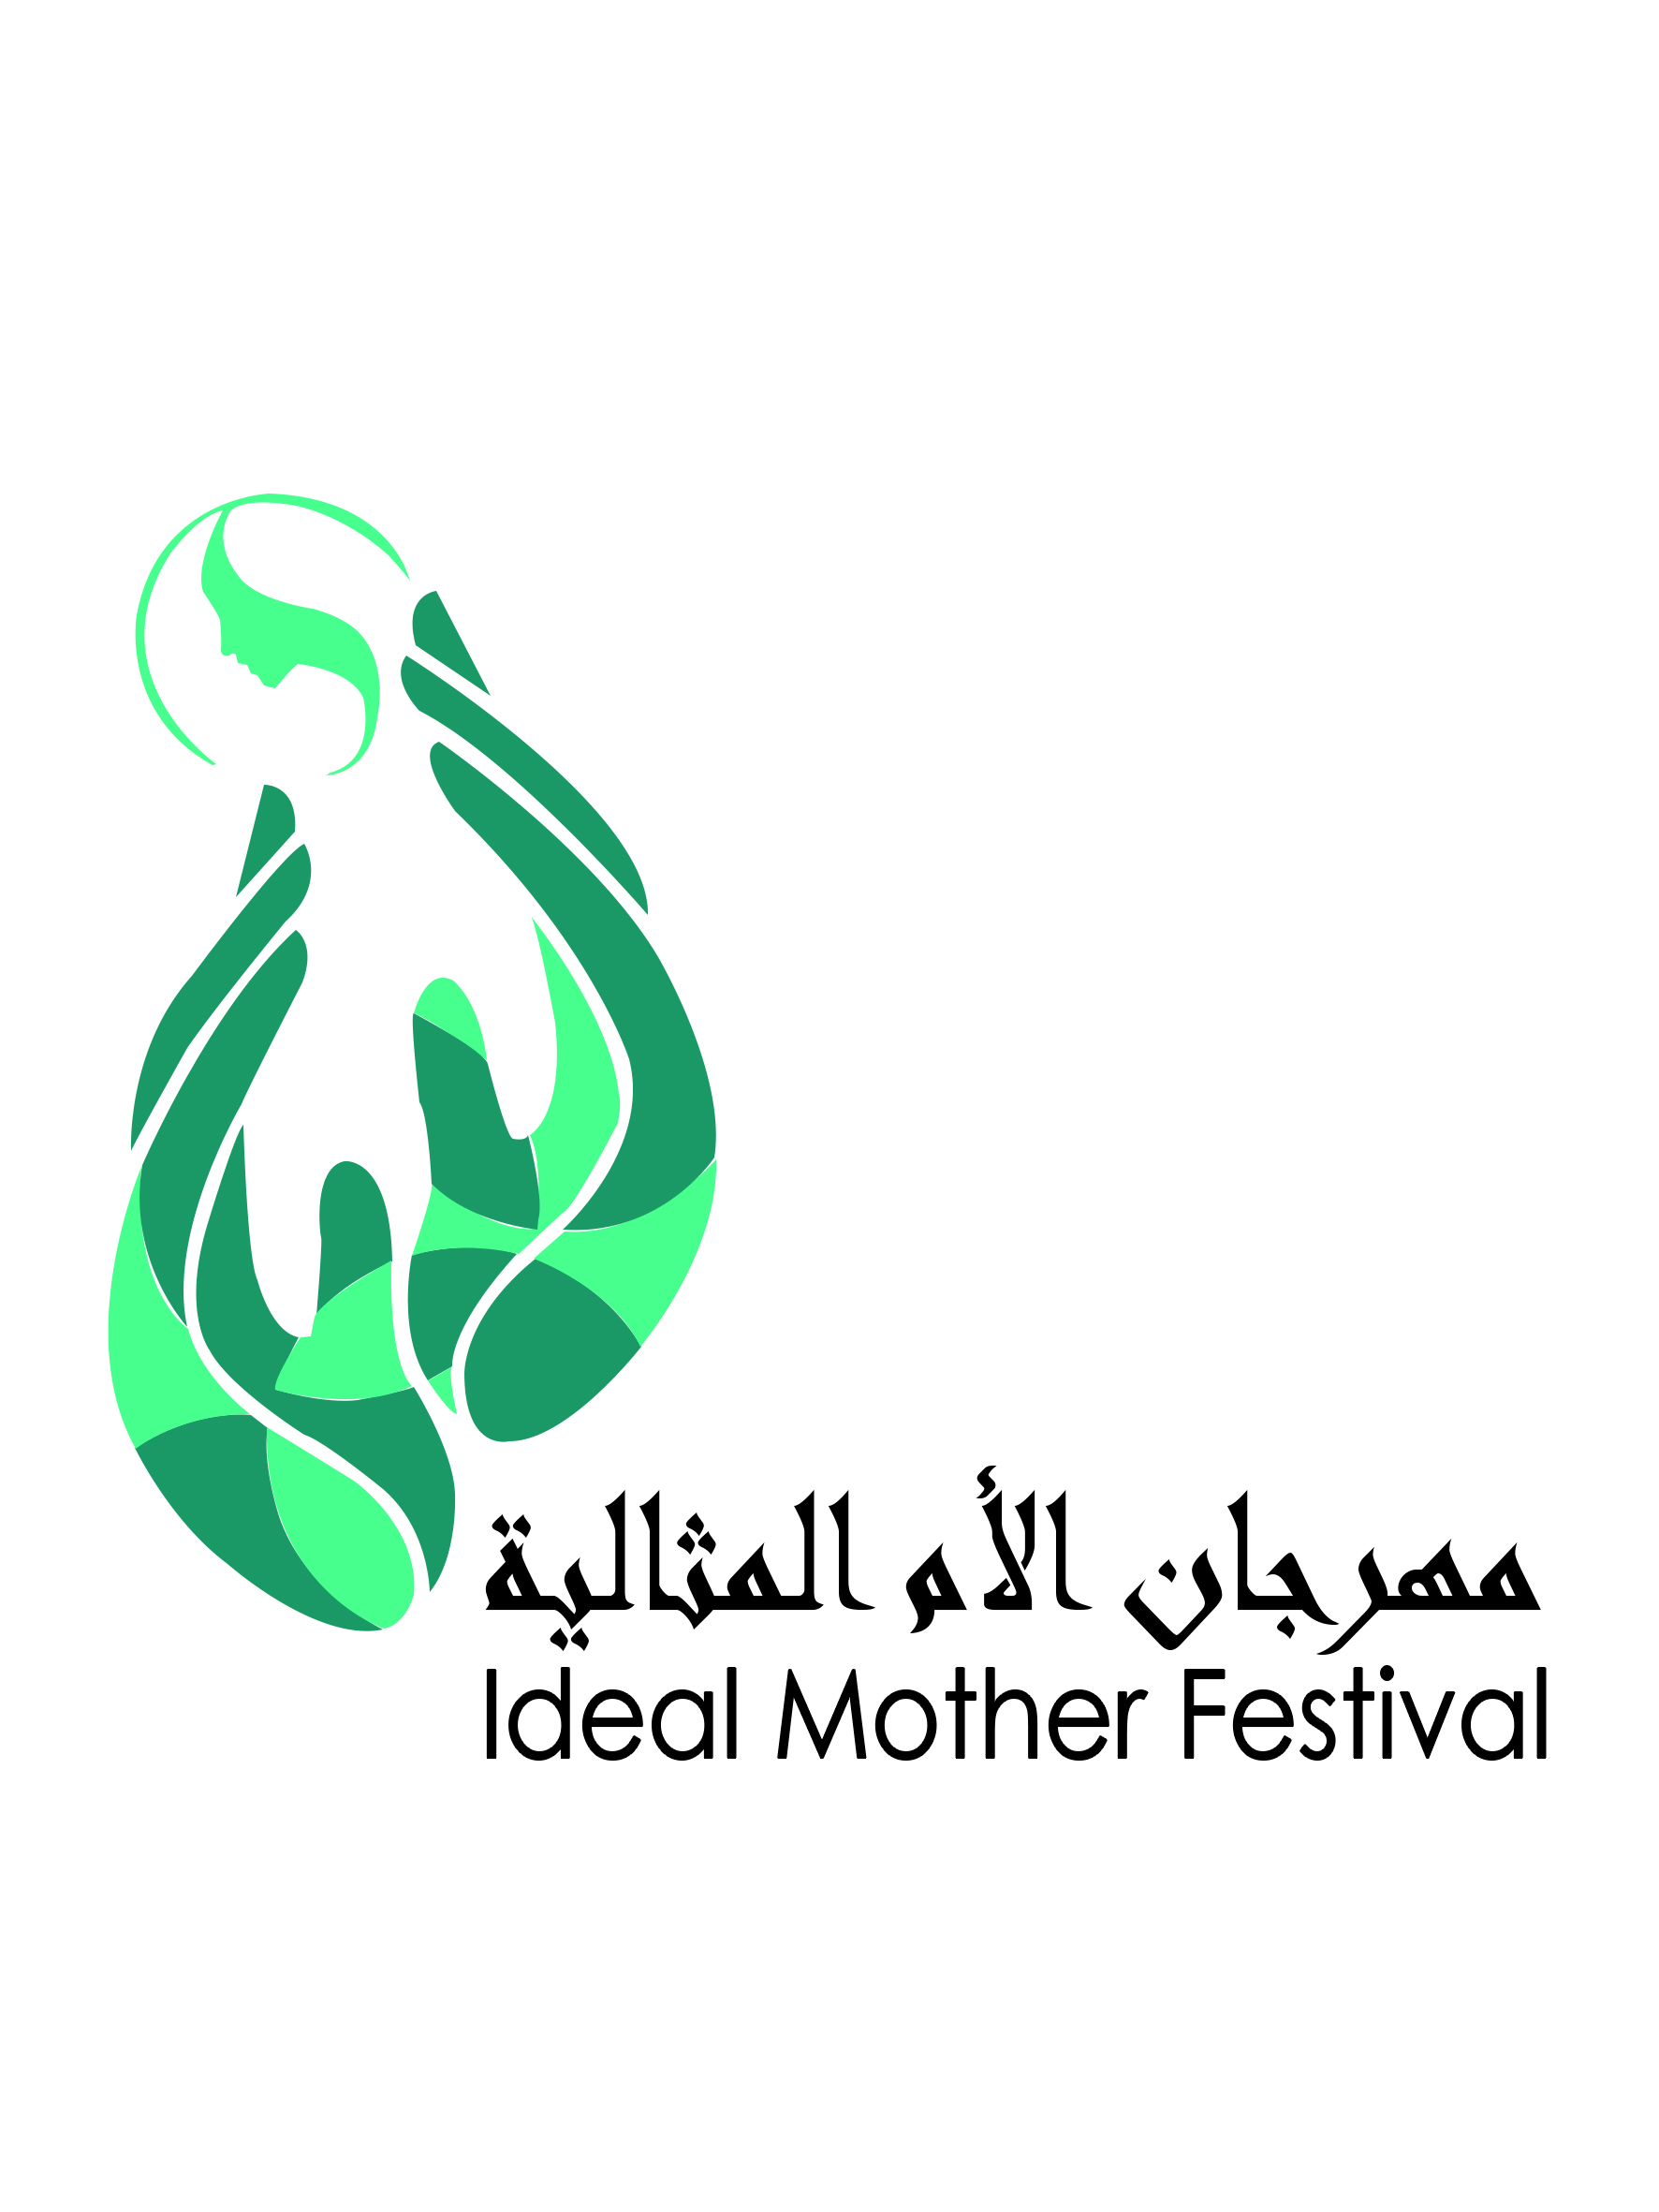 LOGO IDEAL MOTHER FESTIVAL 2